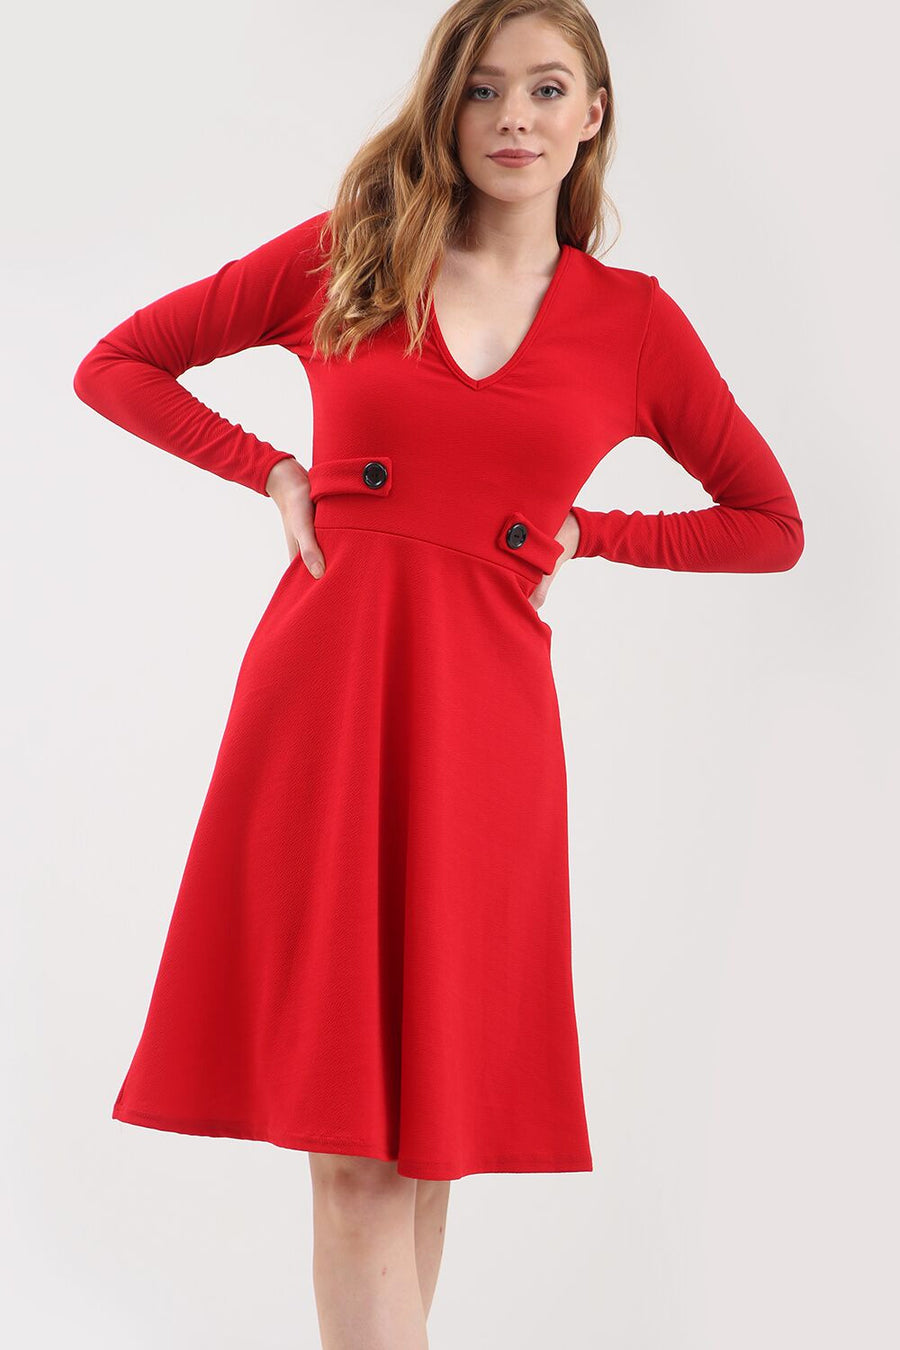 Long Sleeve Button Flared Midi Skater Dress - bejealous-com